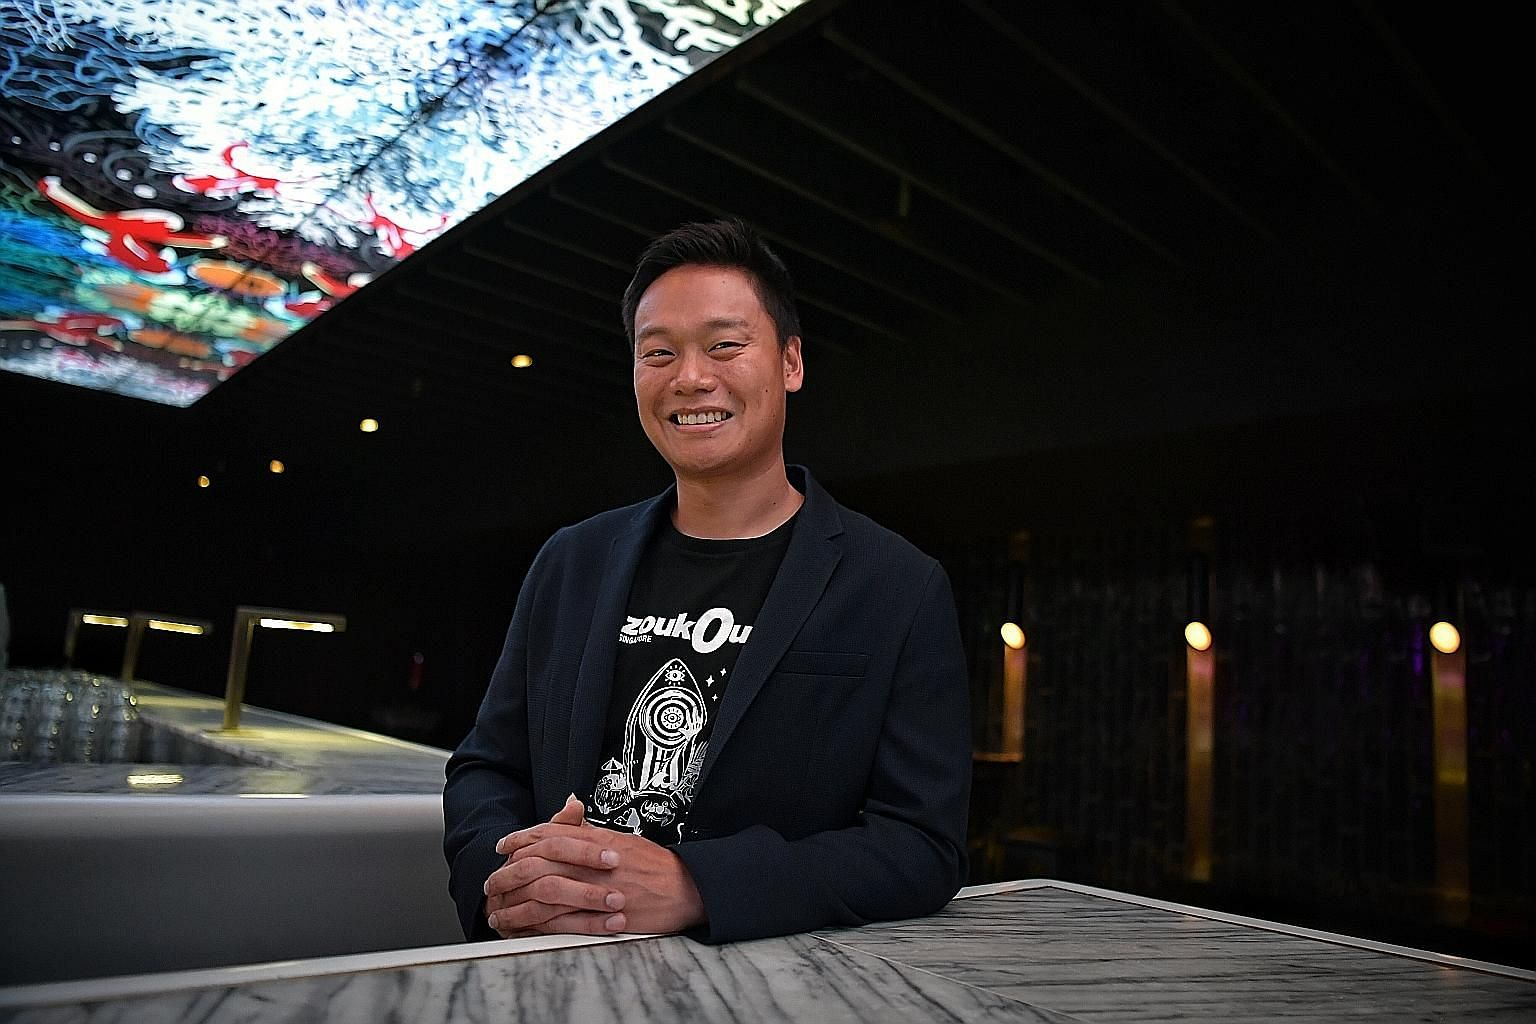 Zouk Group chief executive Andrew Li says it plans to lend the Zouk branding to new ventures in F&B and hospitality.